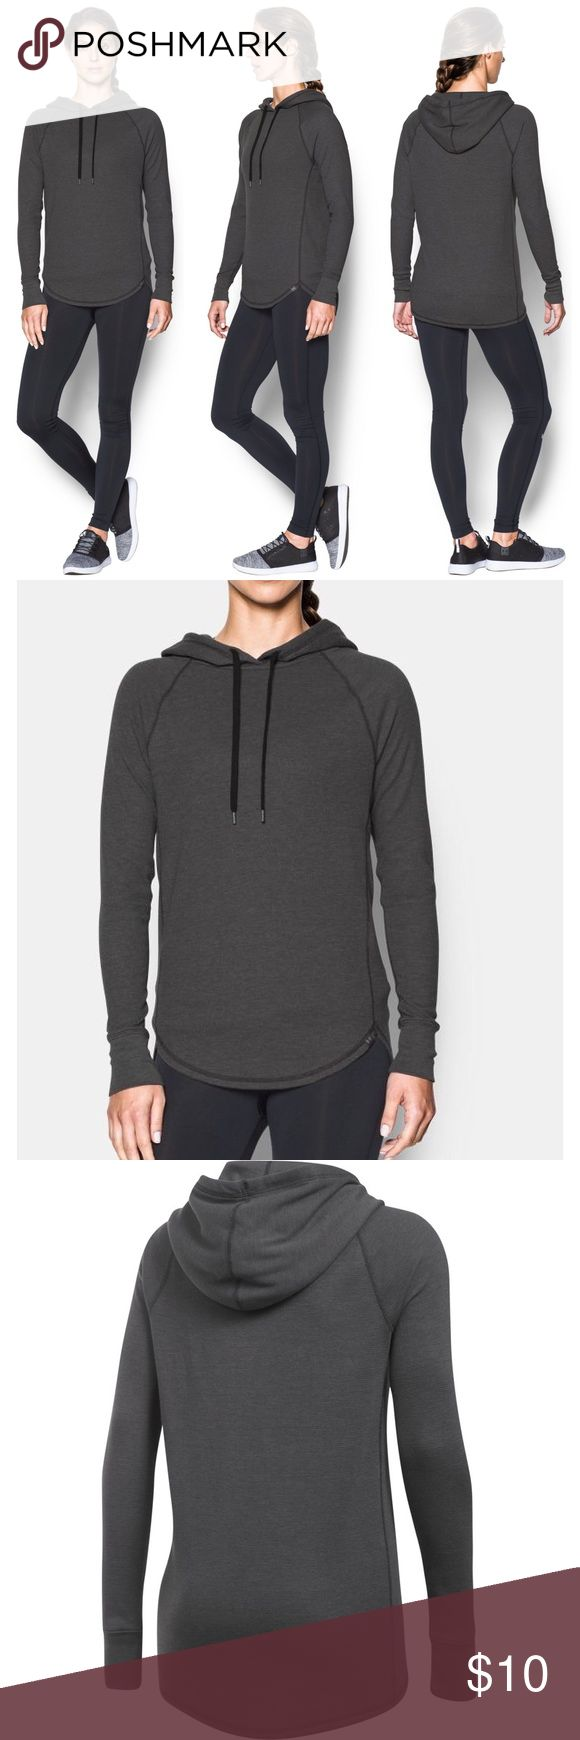 Under Armour Waffle Hoodie Under Armour dark grey women's waffle hoodie, size medium. Perfect for layering. Worn 3-4 times. Not quite as dark in real life as in the stock photos. More pics to come. Under Armour Tops Sweatshirts & Hoodies